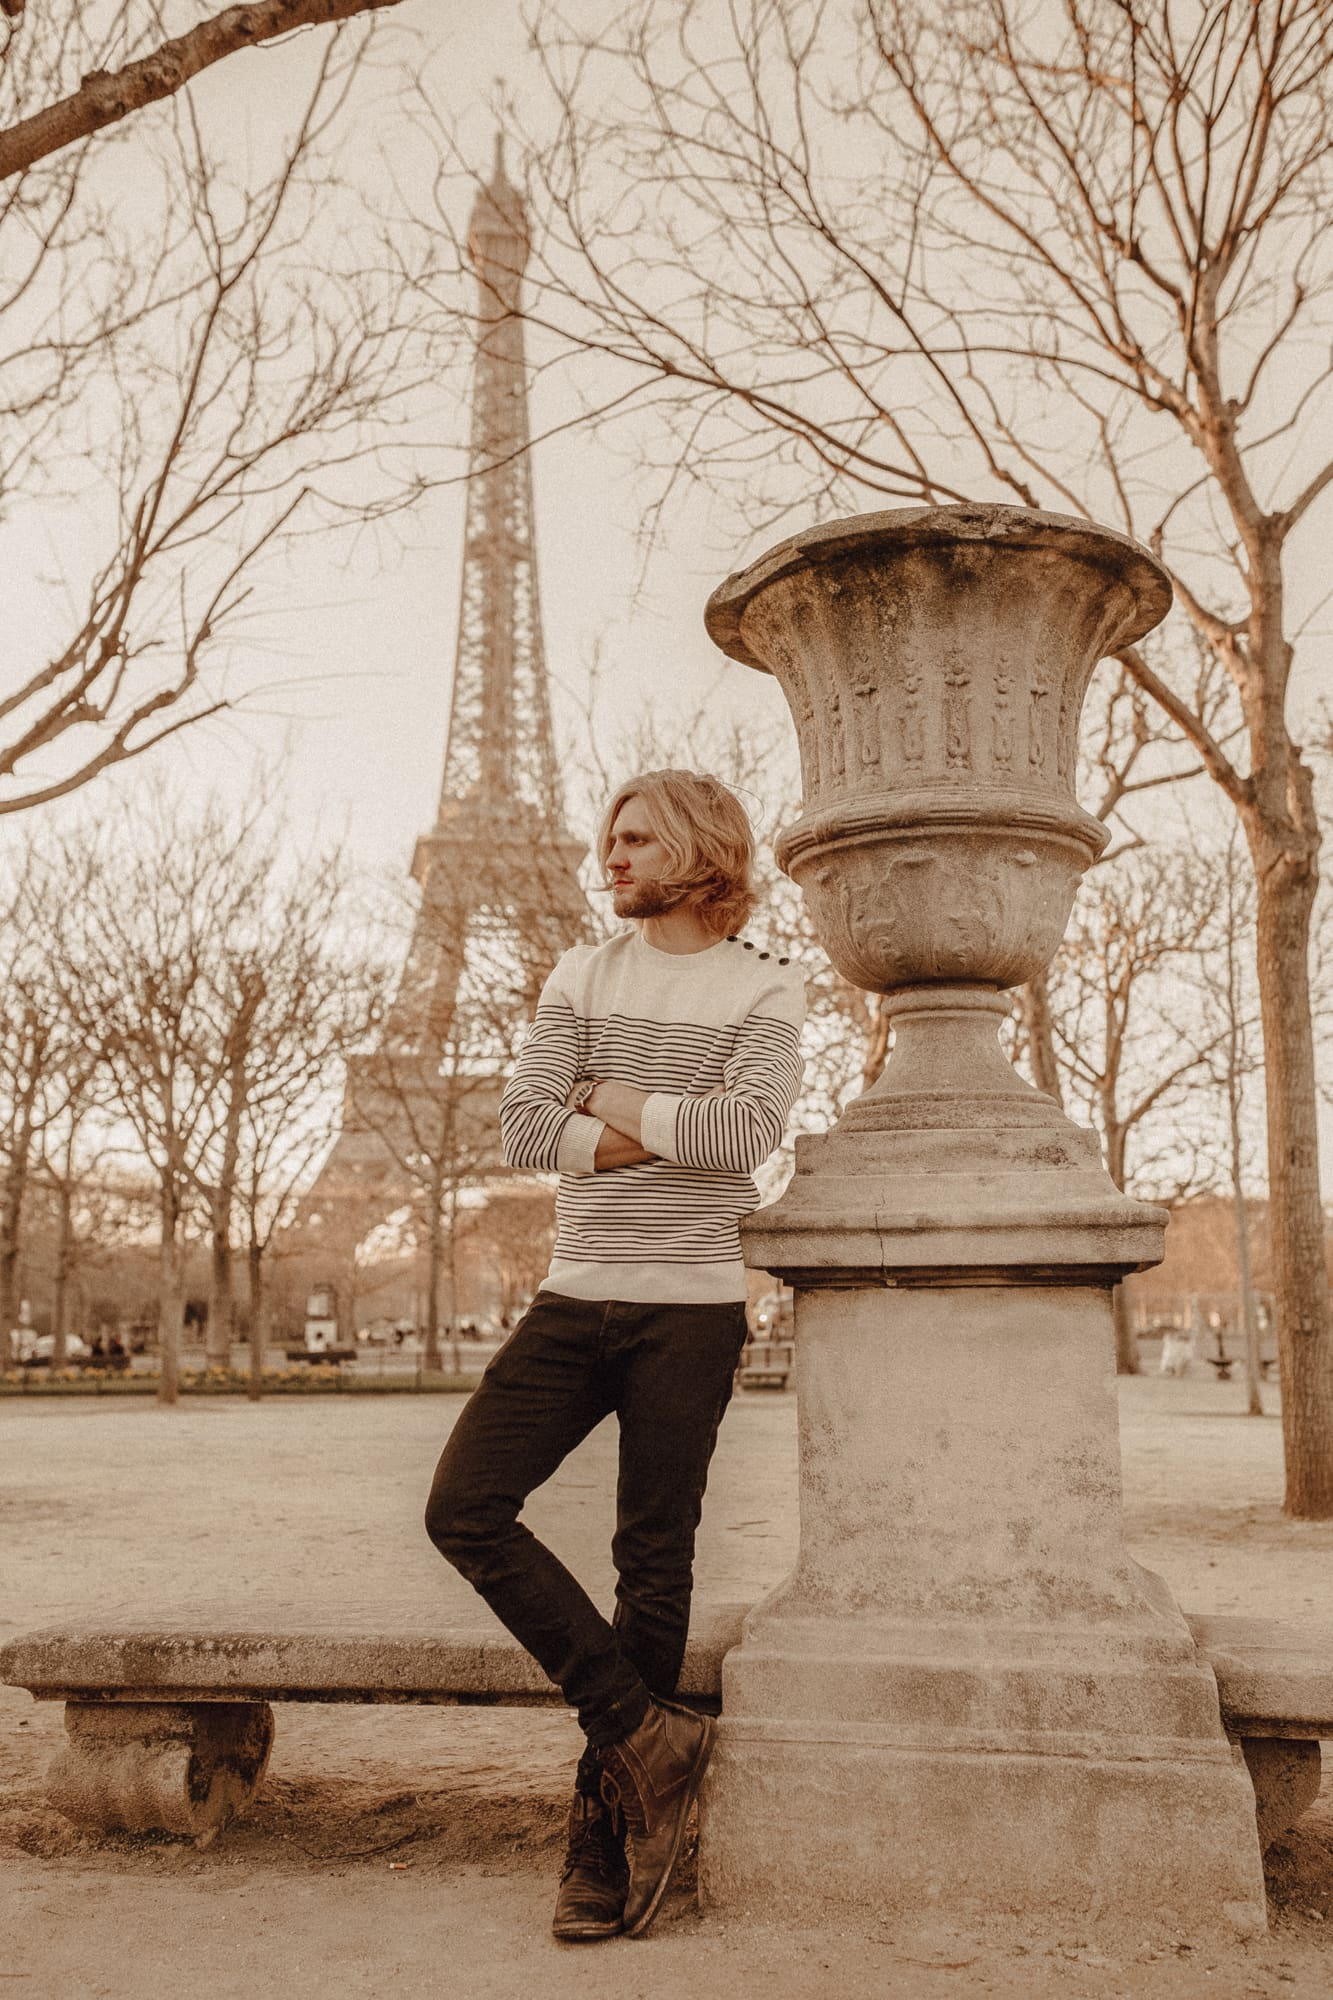 Josh, Nextdoornomad at Eiffel Tower